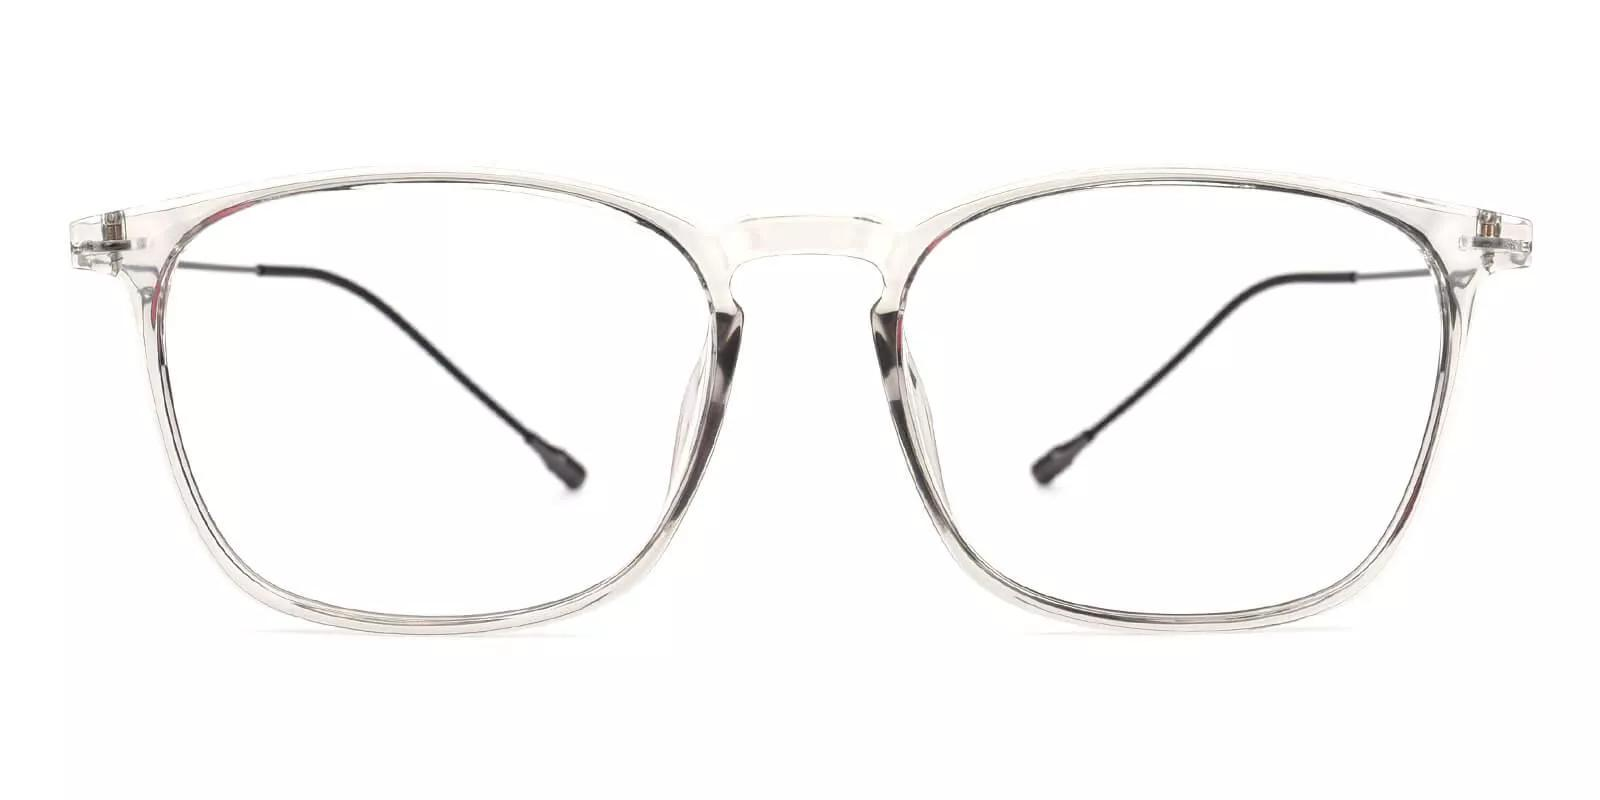 Norwalk Prescription Eyeglasses Gray Clear